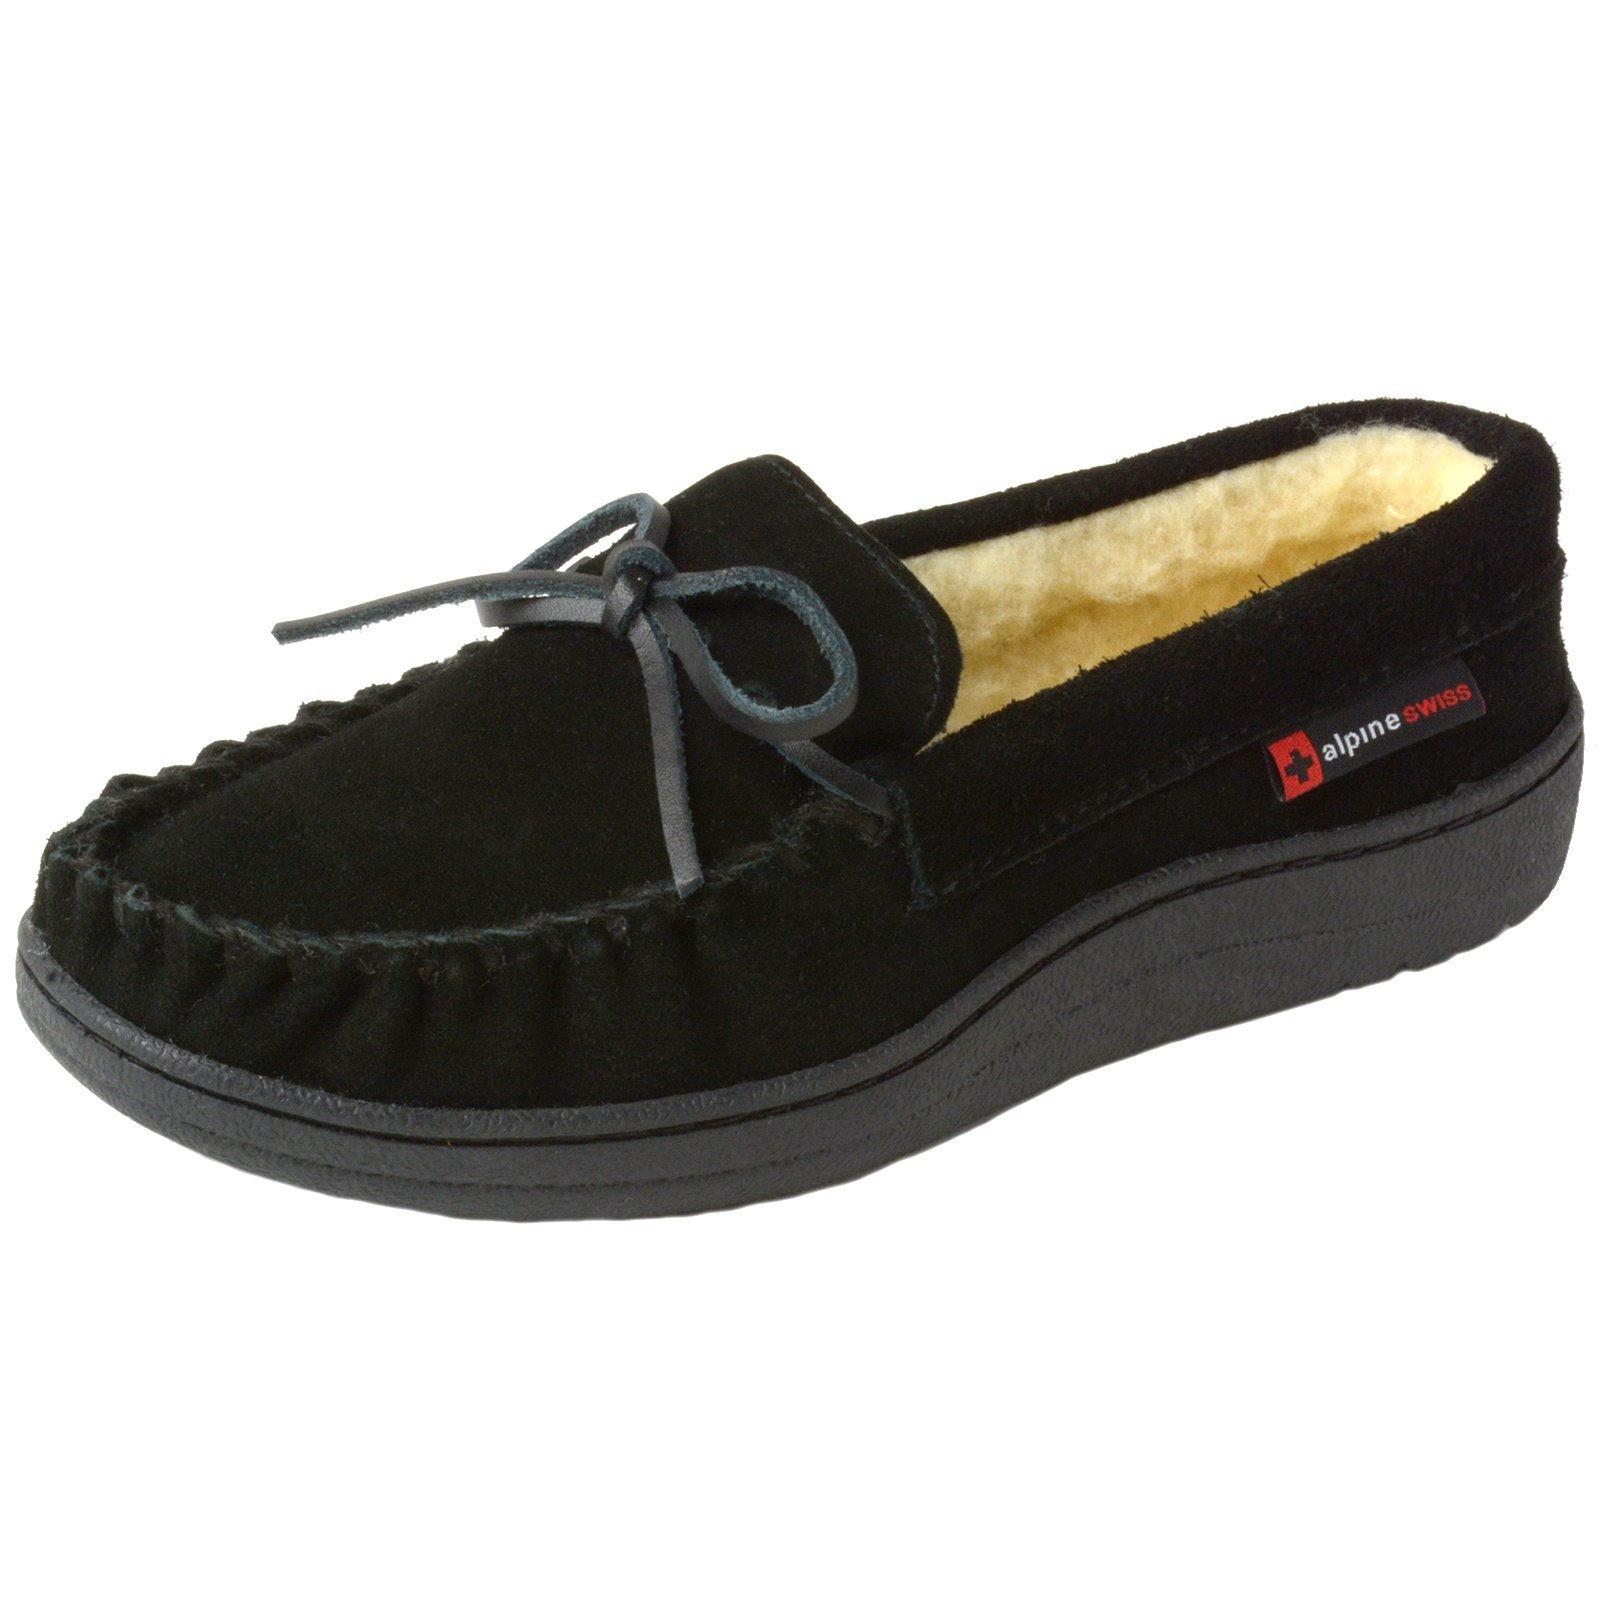 alpine swiss Sabine Womens Suede Shearling Slip On Moccasin Slippers Black 8 M US